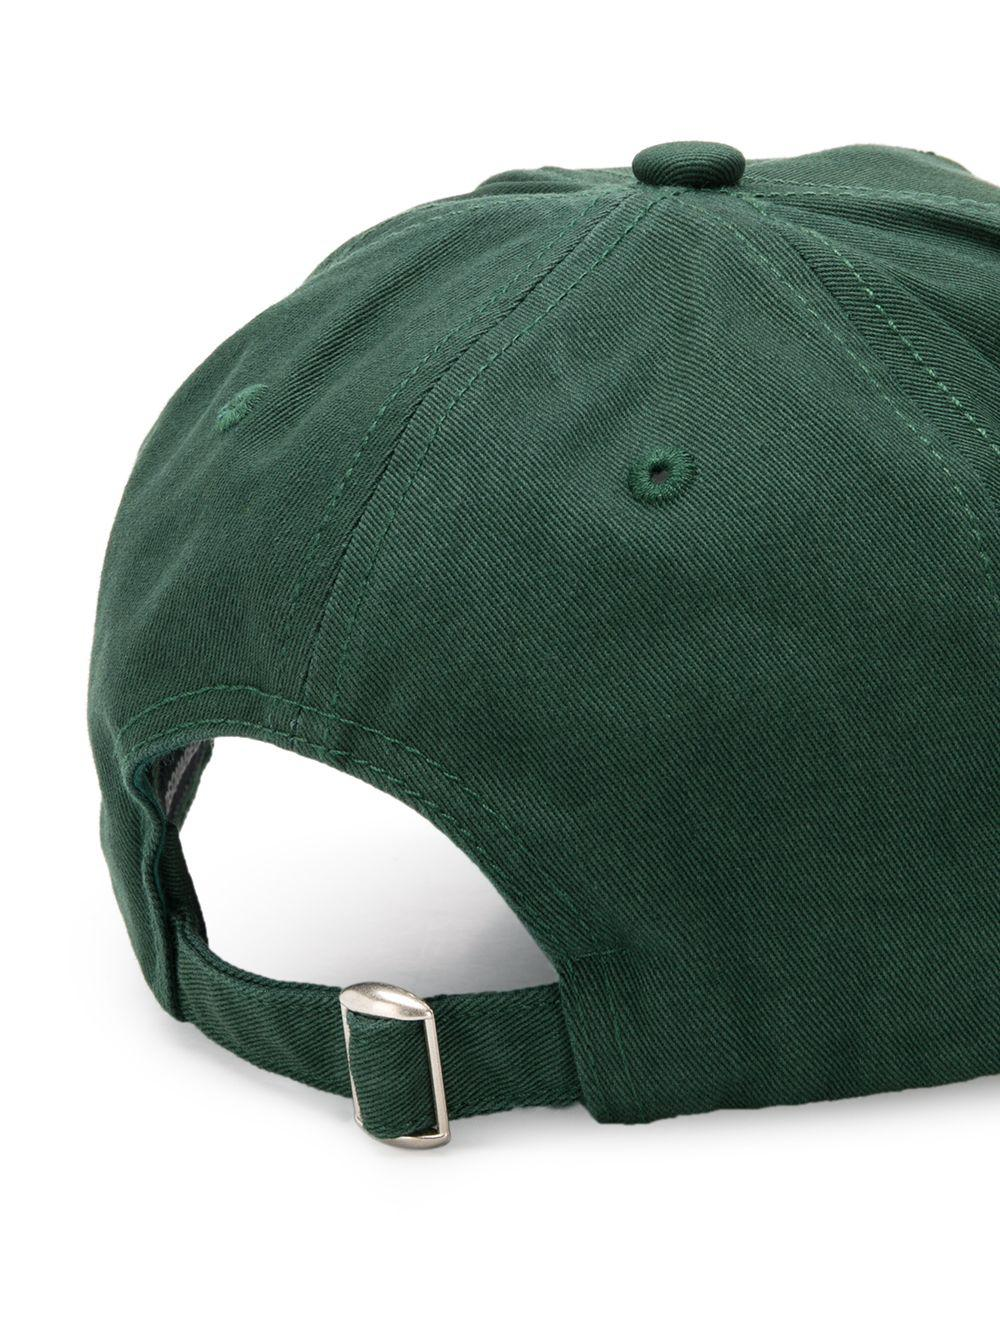 Dsquared² Embroidered Superior Baseball Cap in Green for Men - Lyst bc02e9ccdca